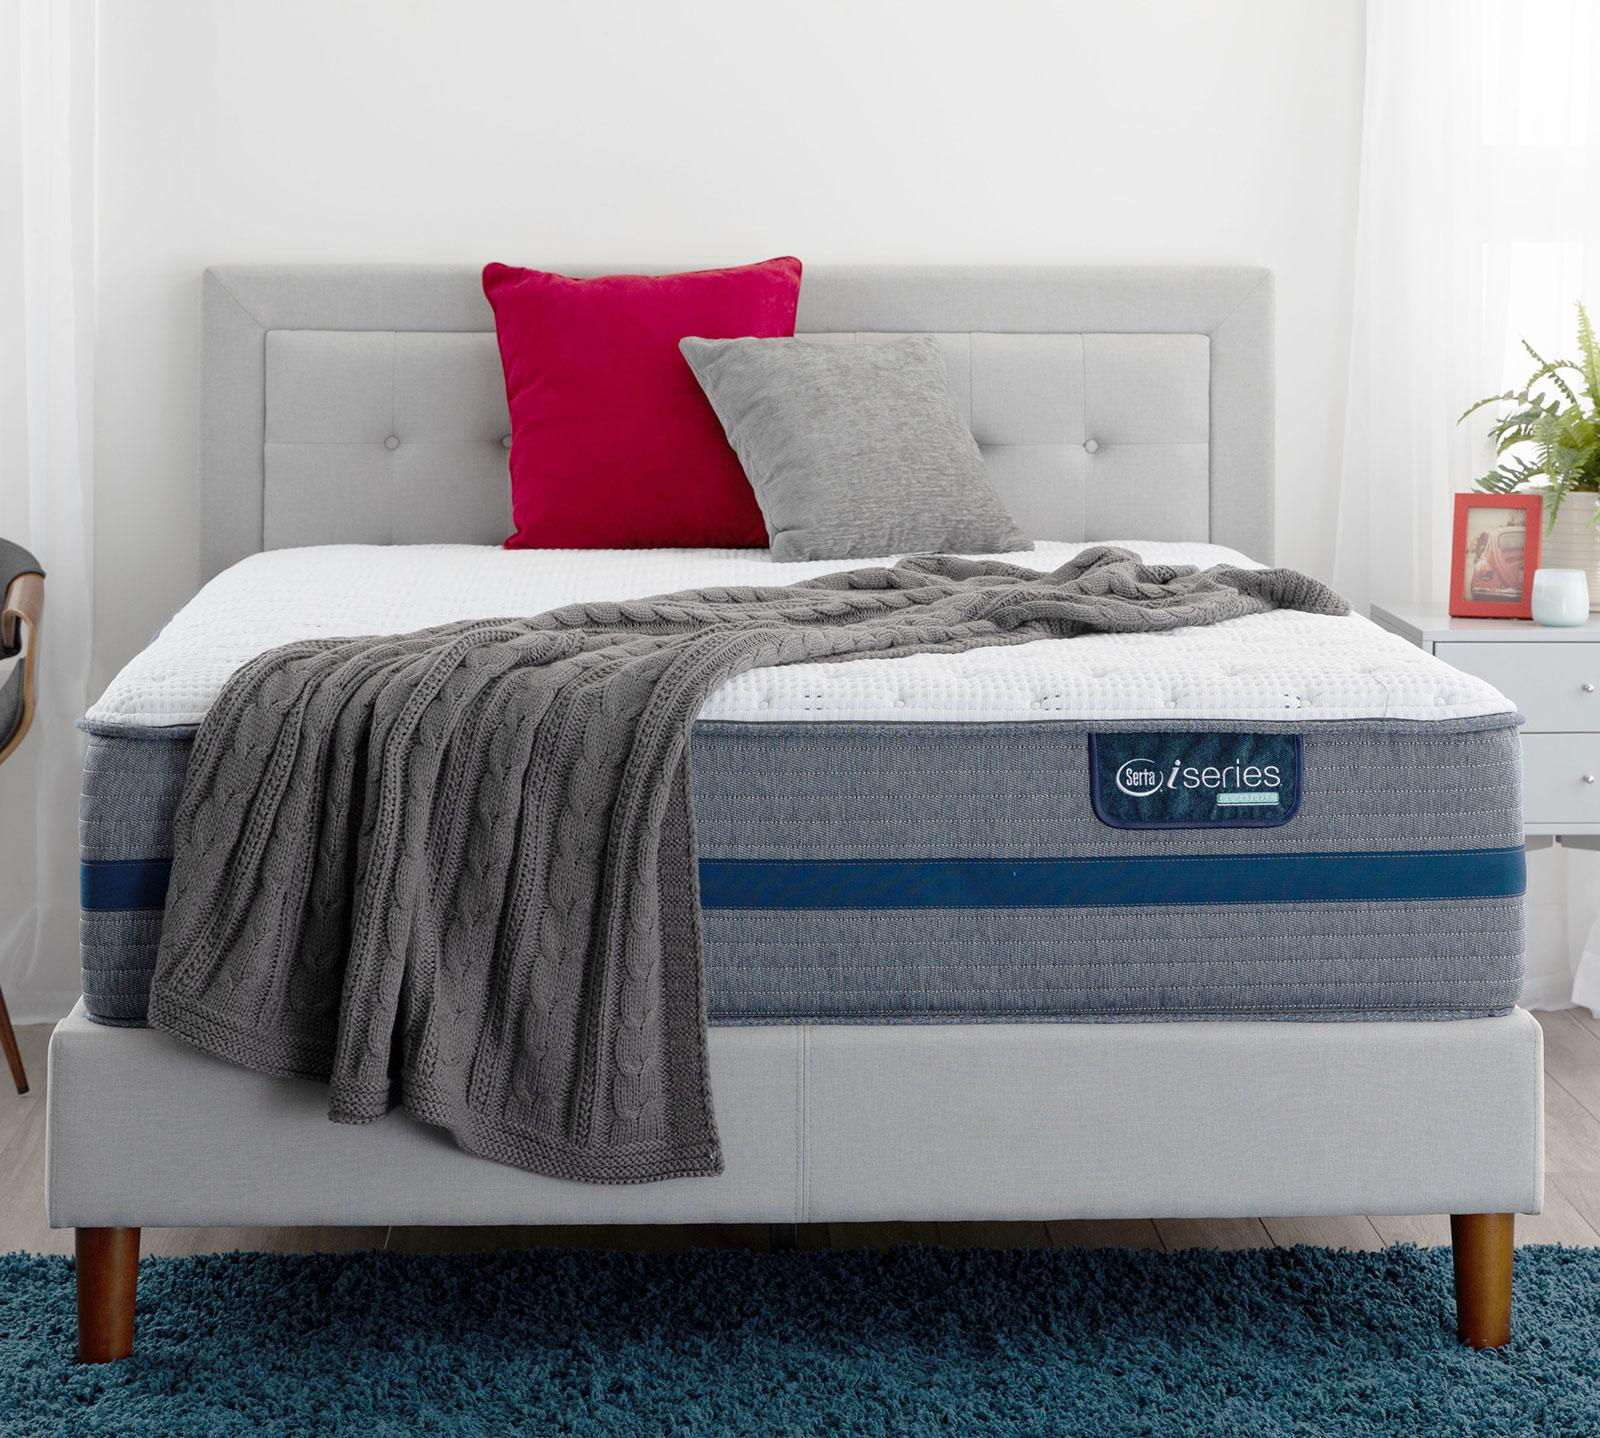 iSeries Hybrid 100 13.5 Inch Firm Mattress